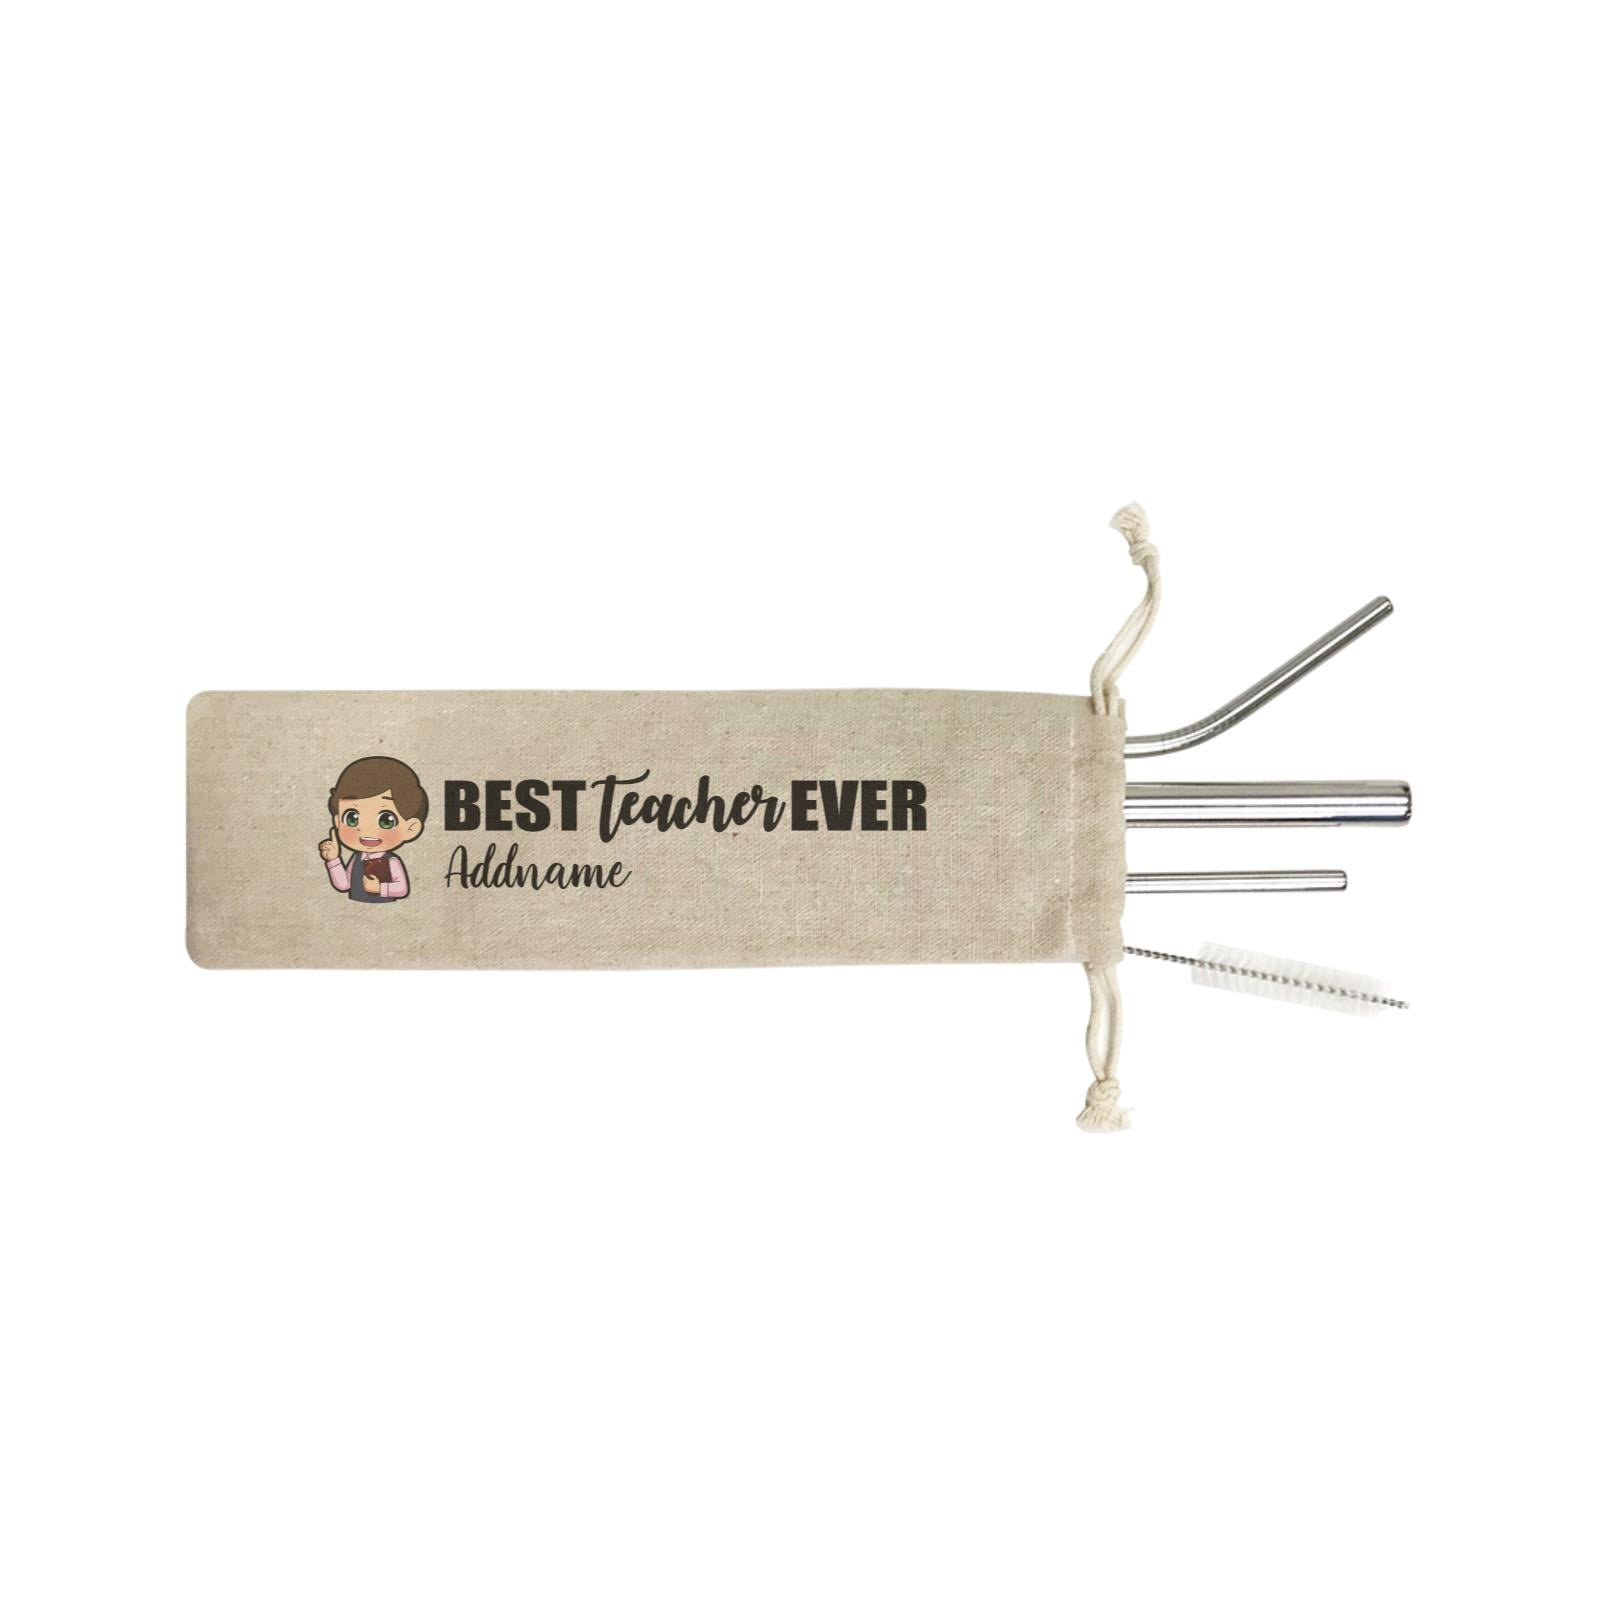 Chibi Teachers Chinese Man Best Teacher Ever Addname SB 4-In-1 Stainless Steel Straw Set in Satchel